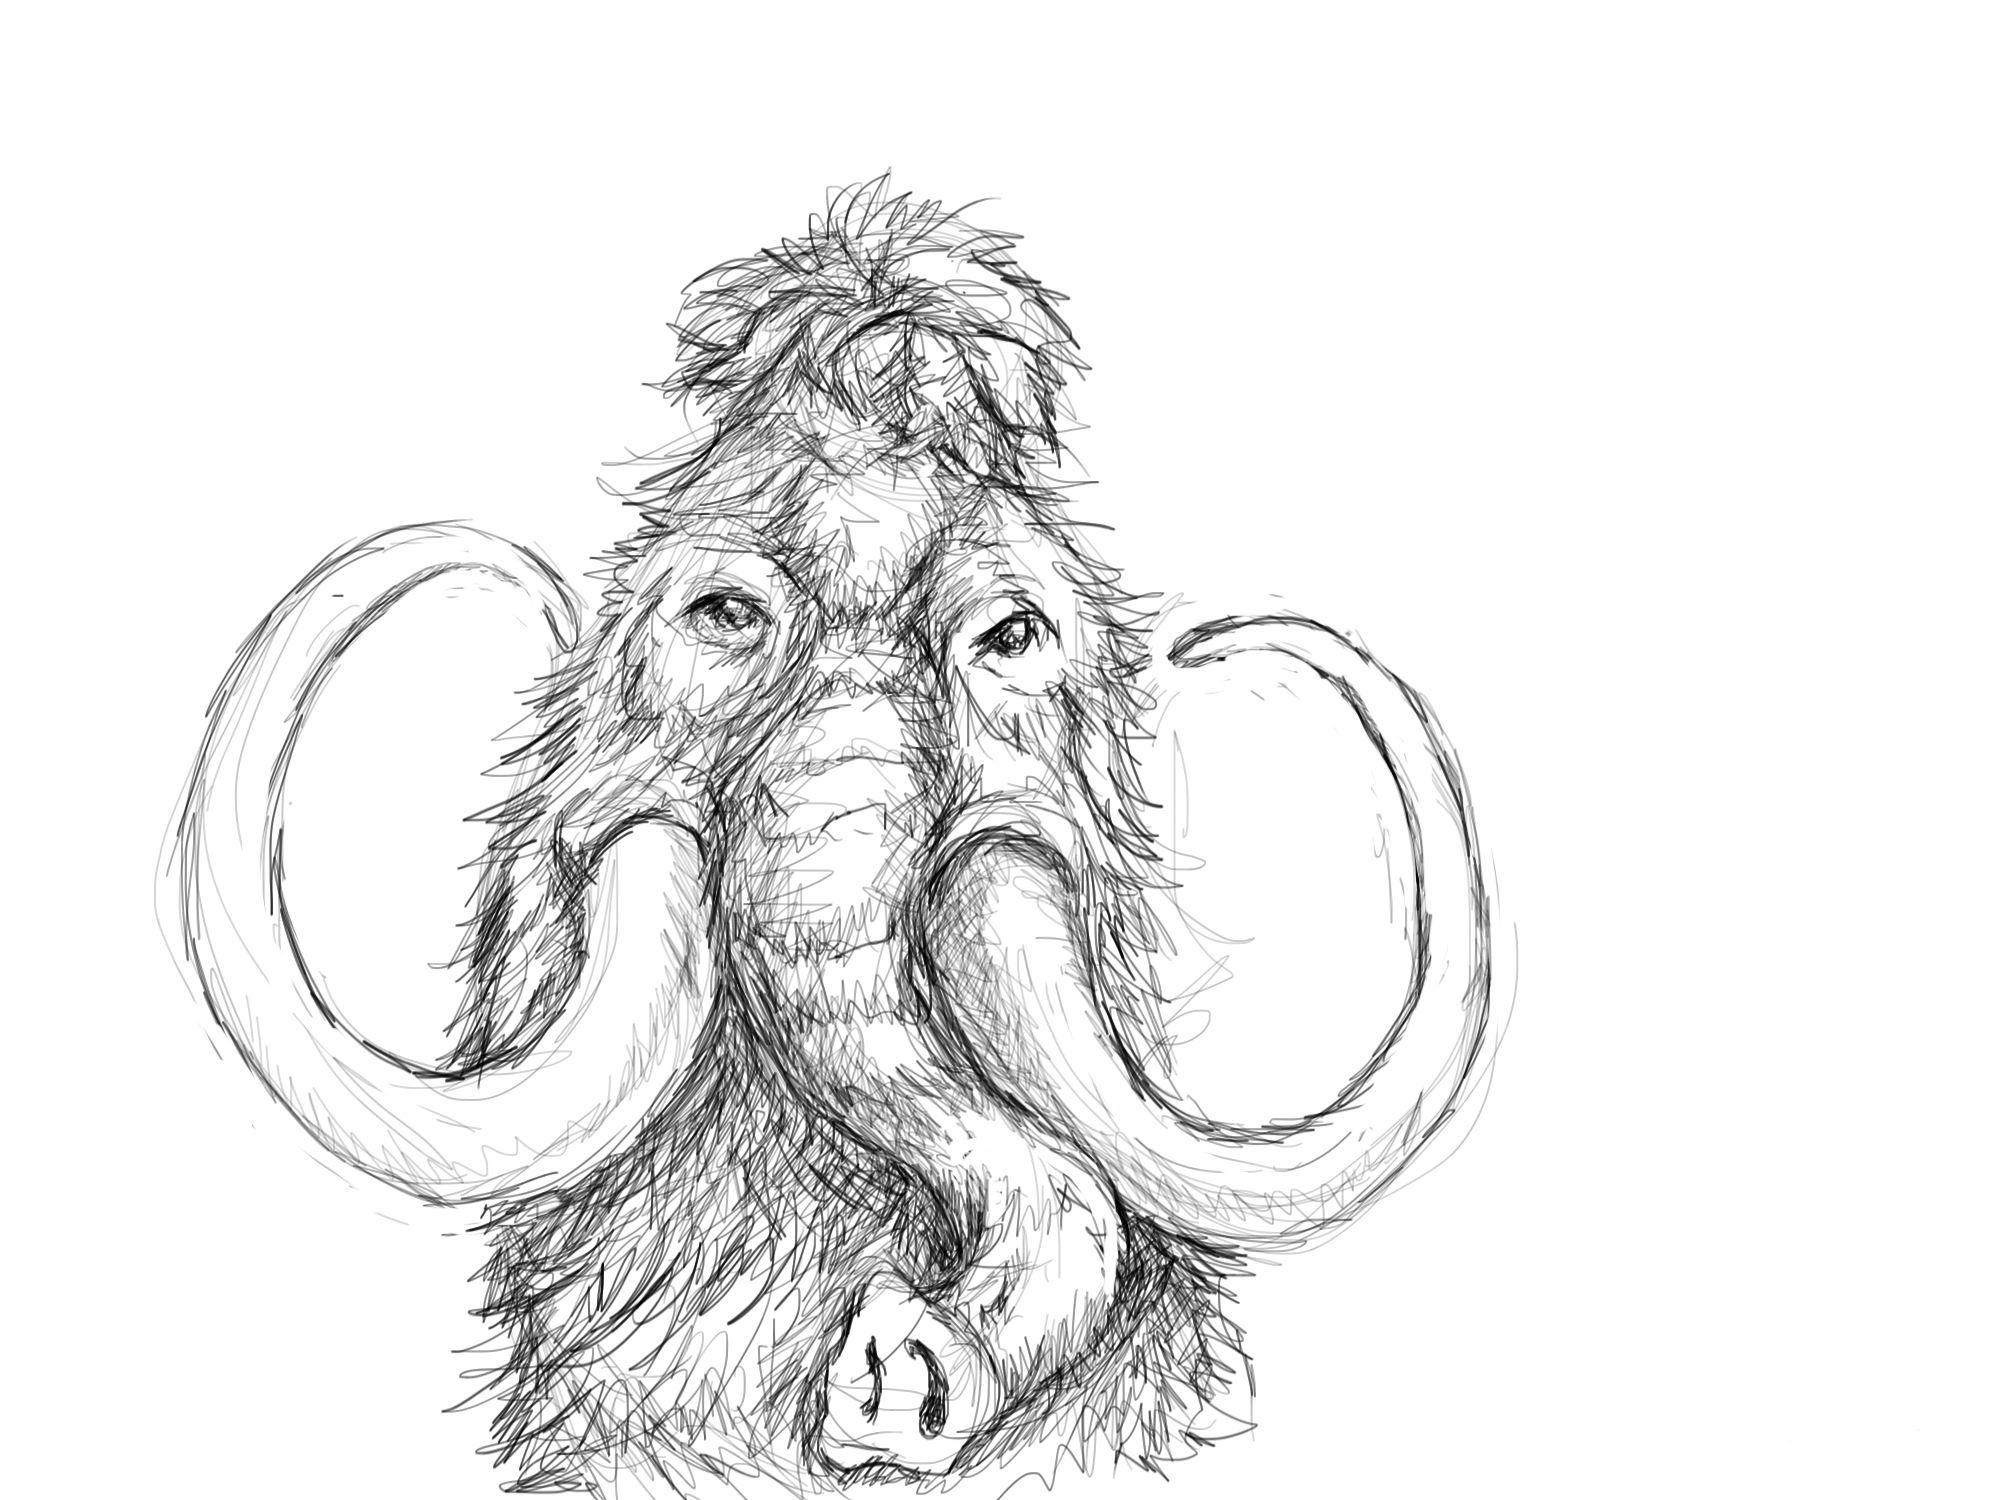 wooly mammoth drawing learn how to draw a woolly mammoth other animals step by wooly mammoth drawing